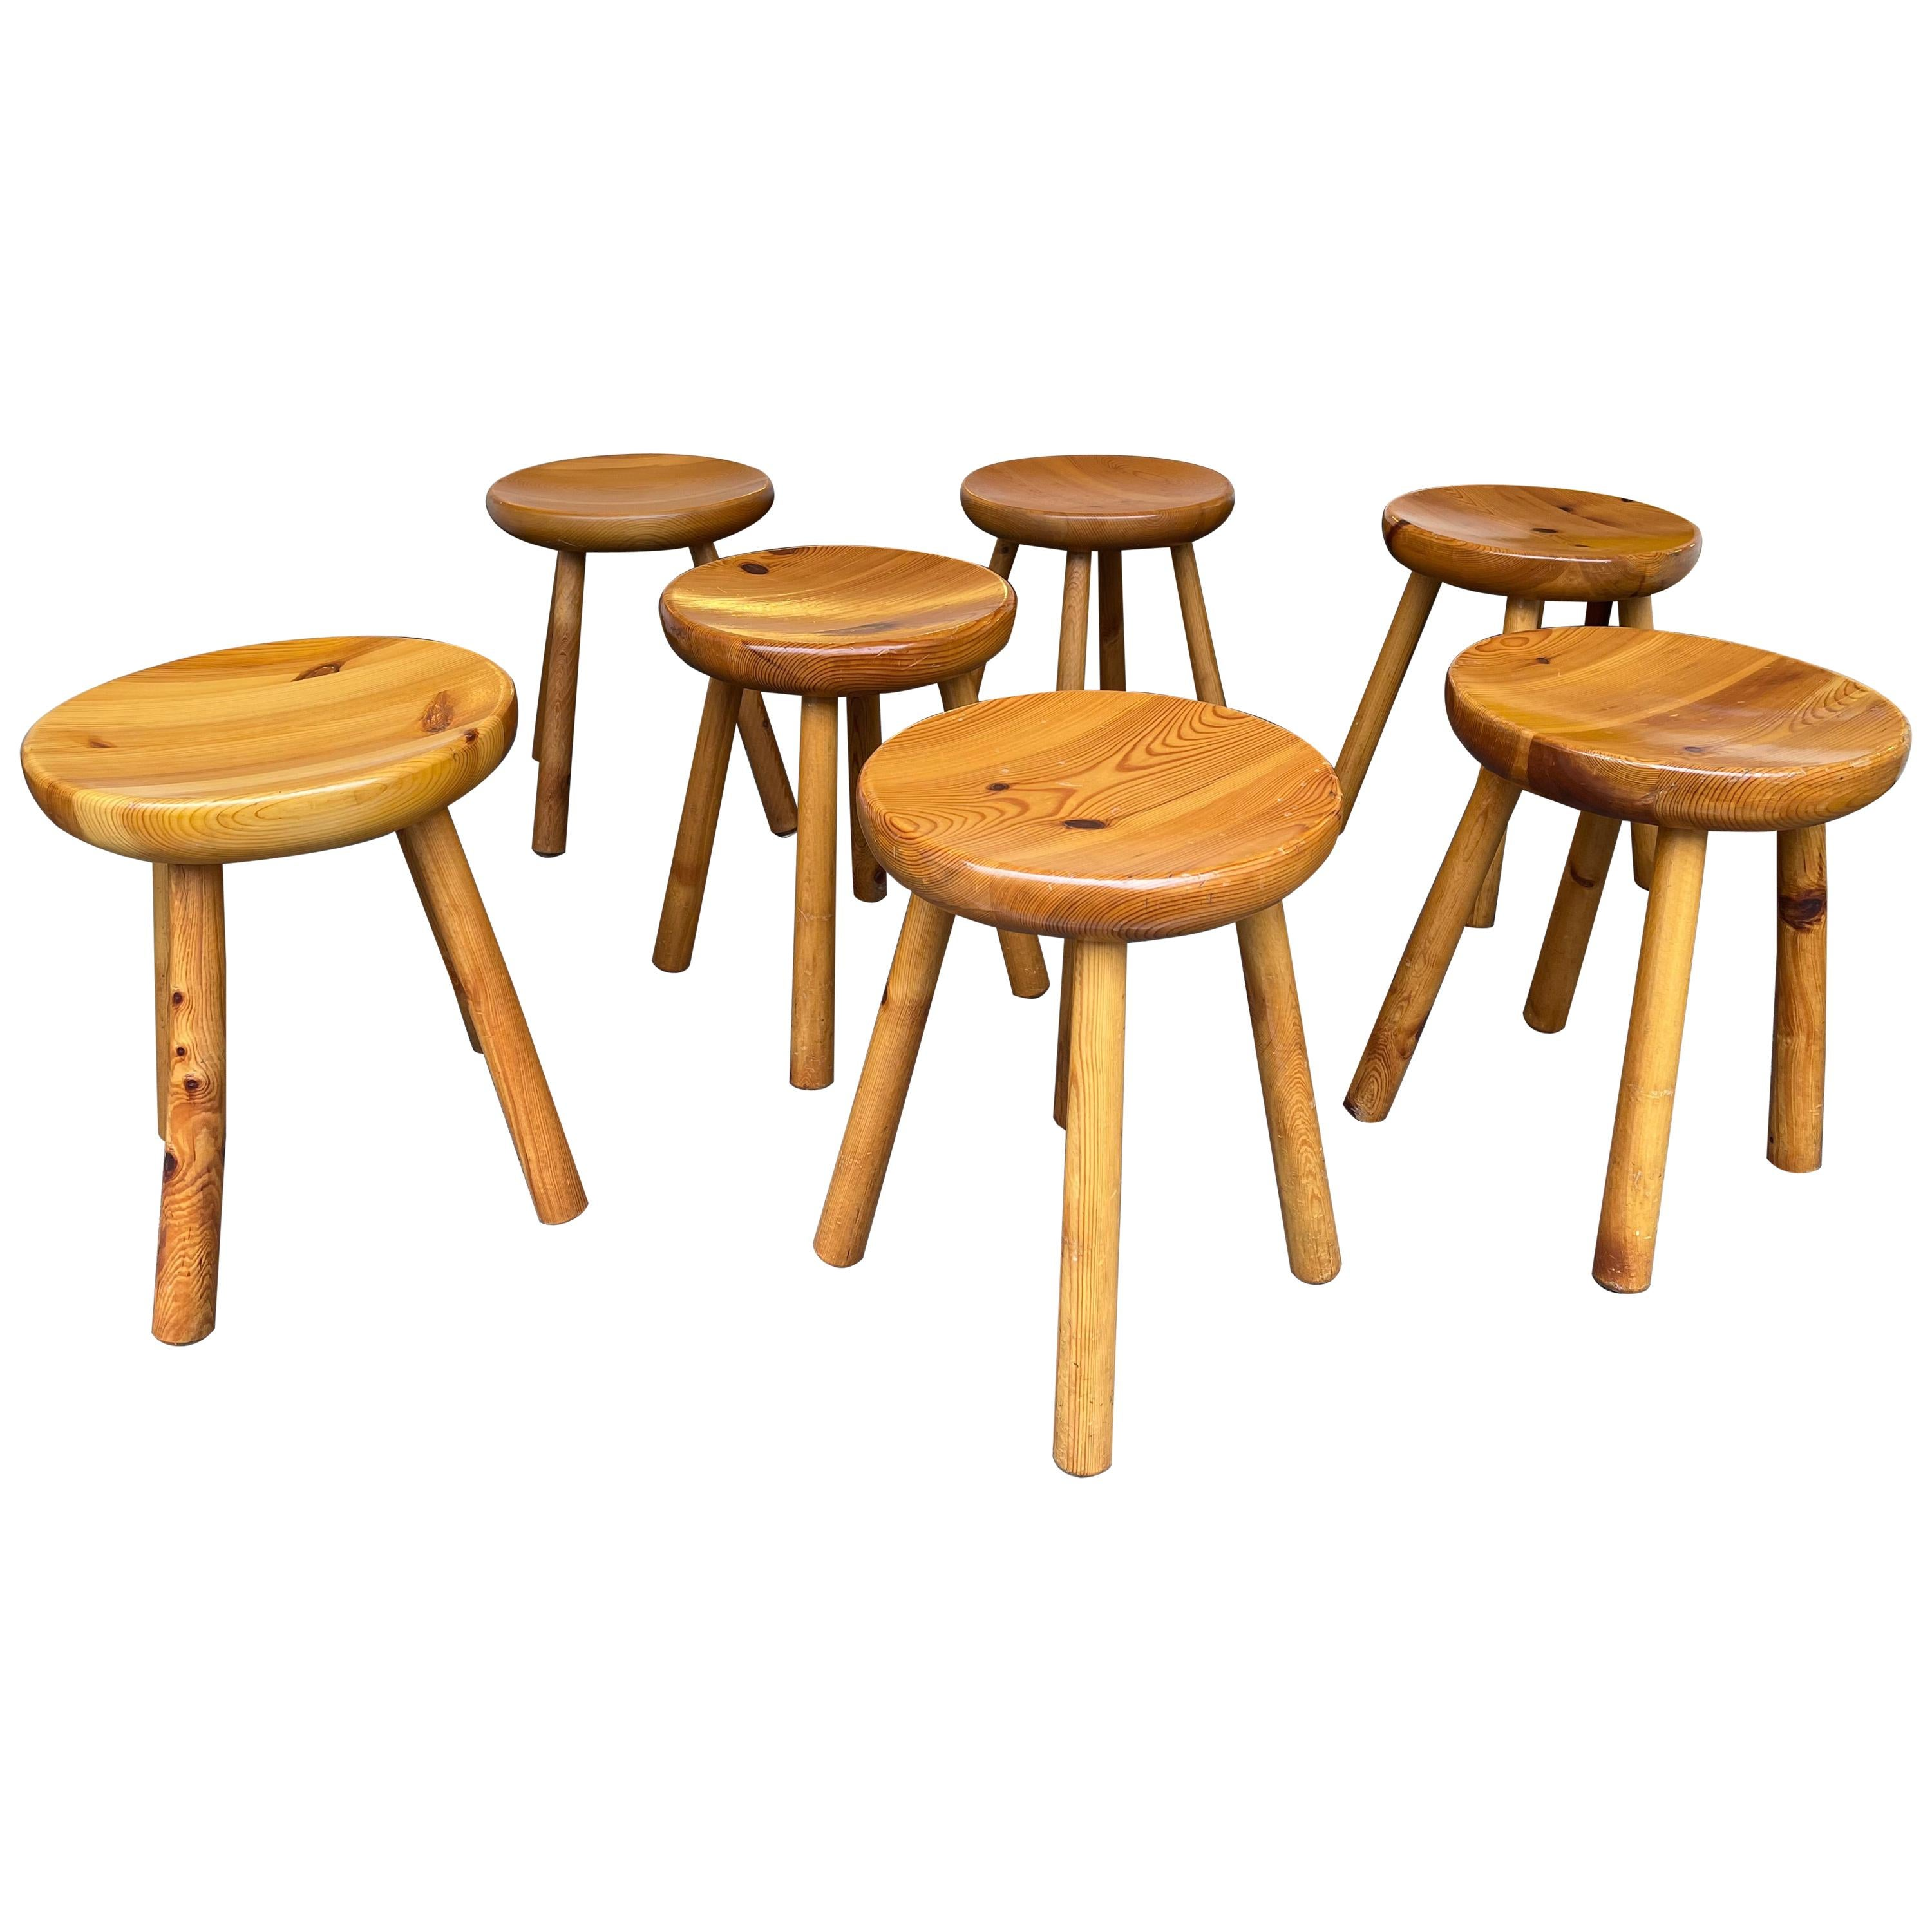 Pine Stool Attributed to Charlotte Perriand, France, 1960s